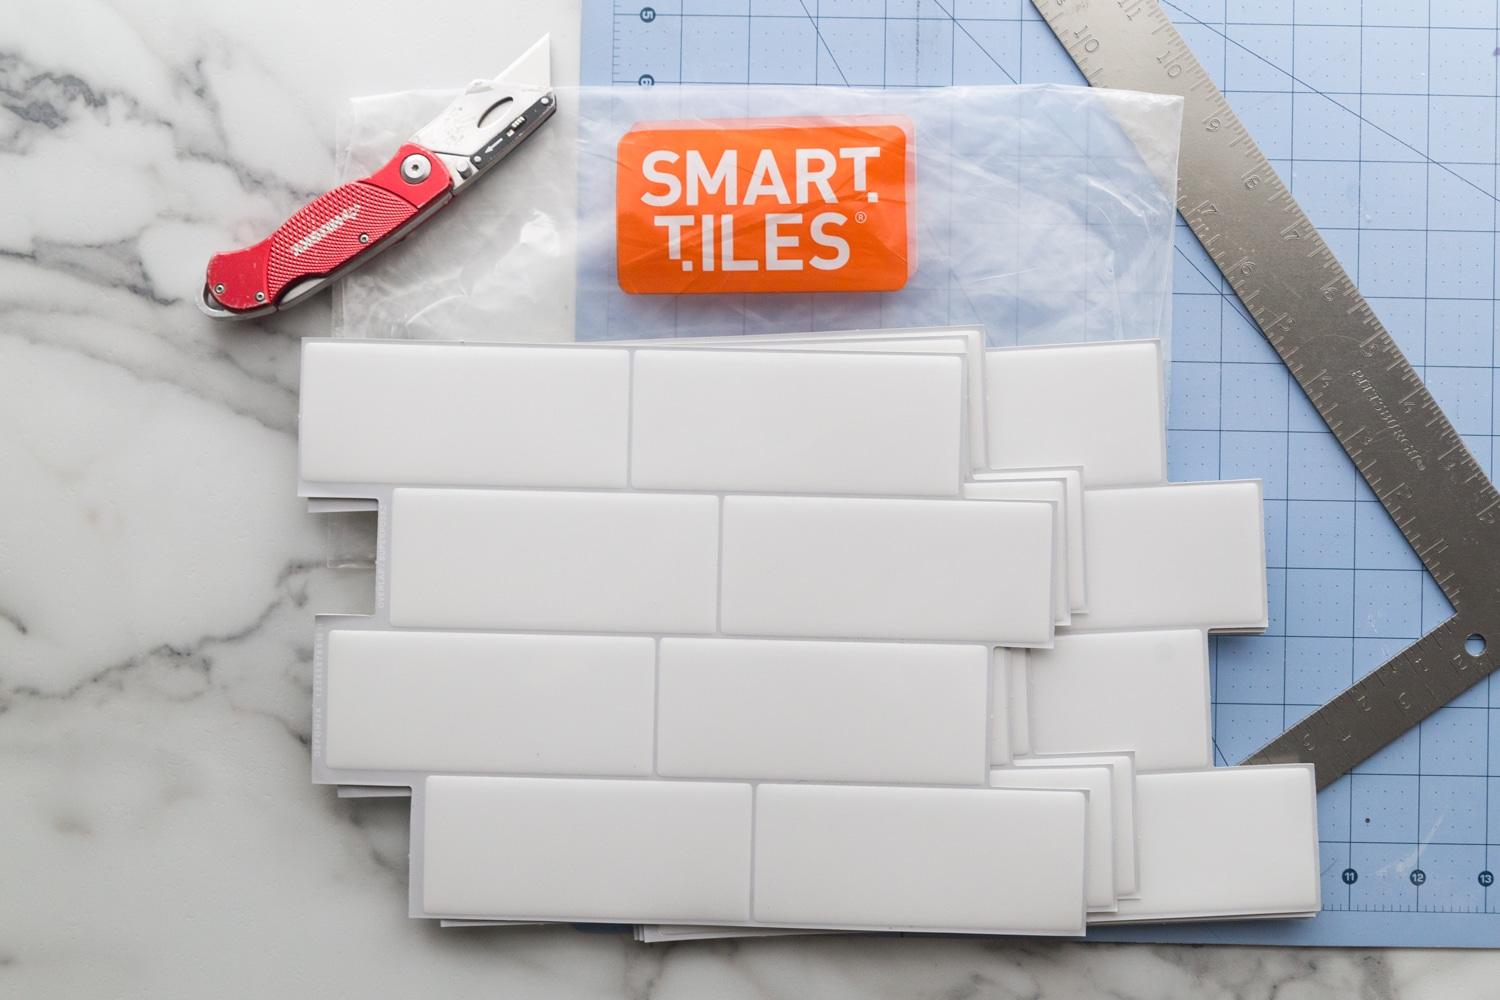 Tools need to Install Smart Tiles